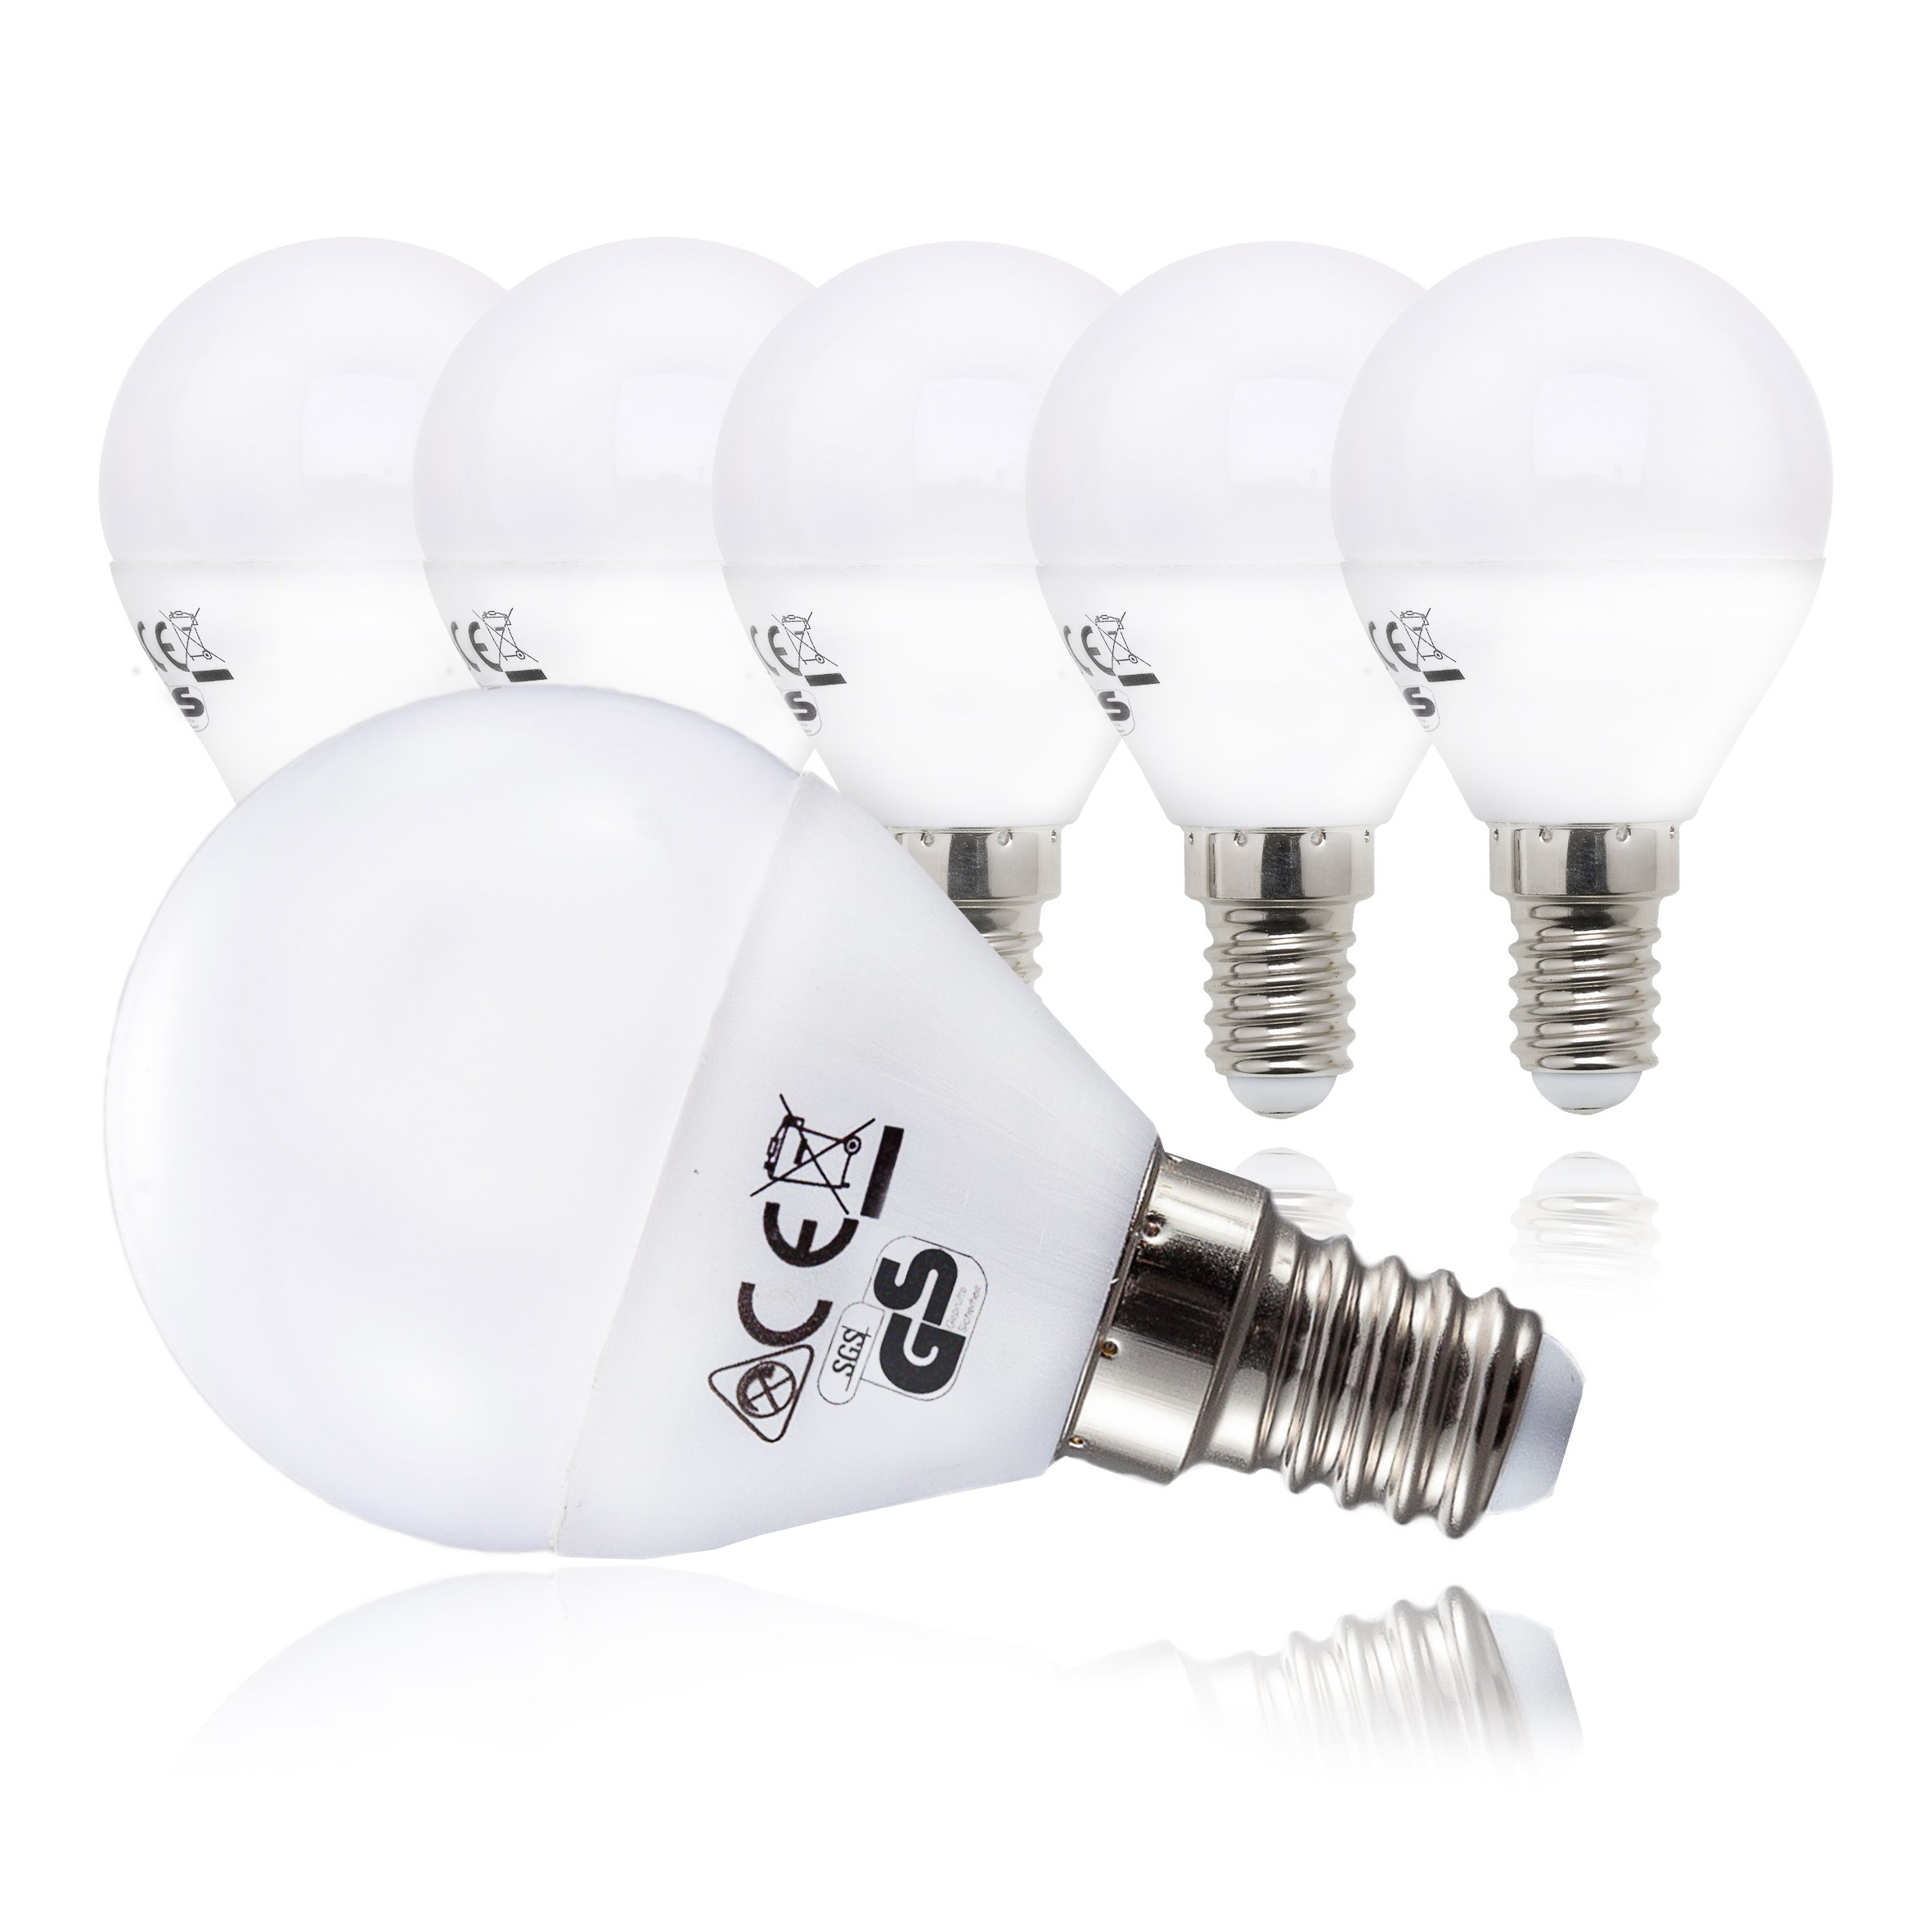 5 x 5W Bombillas LED E14 Ø 45mm 230V, Luz blanco cálido 3000K 470lm IP20